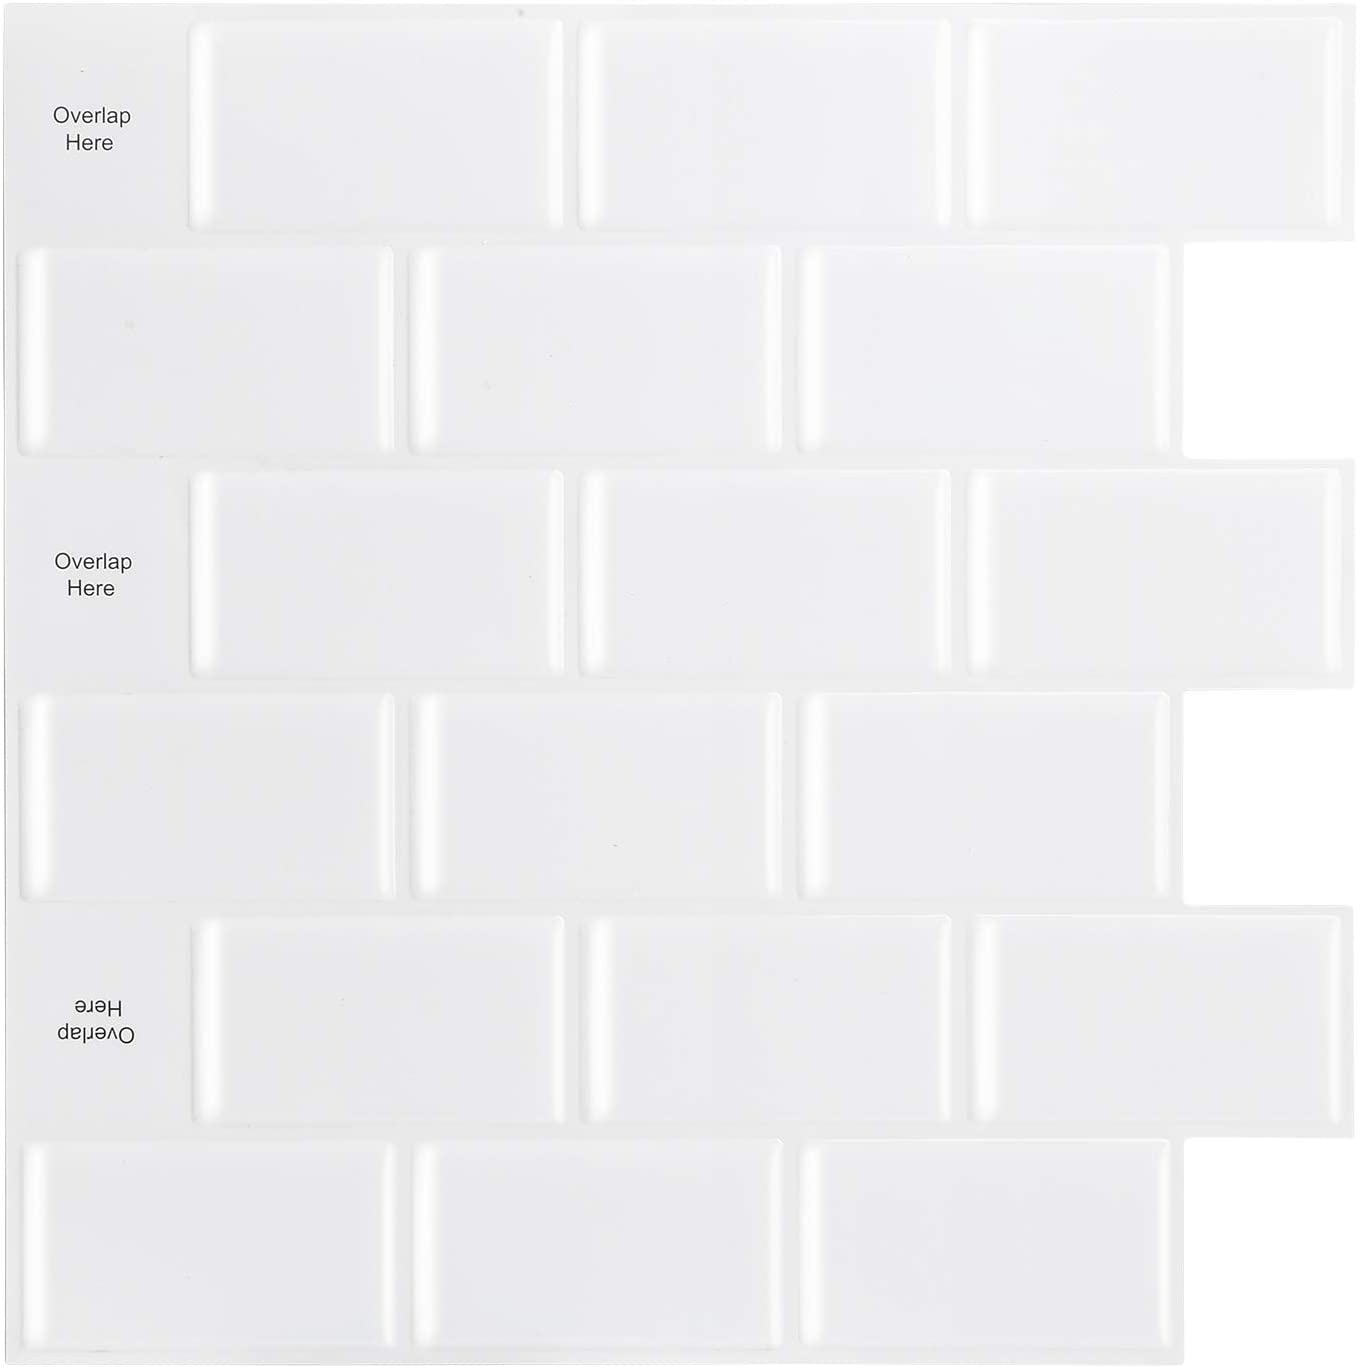 HomeyMosaic Peel and Stick Tile for Kitchen Backsplash,Stick on Tiles for Kitchen, 12x12 inches Subway Tile with White Grout(10-Sheets)